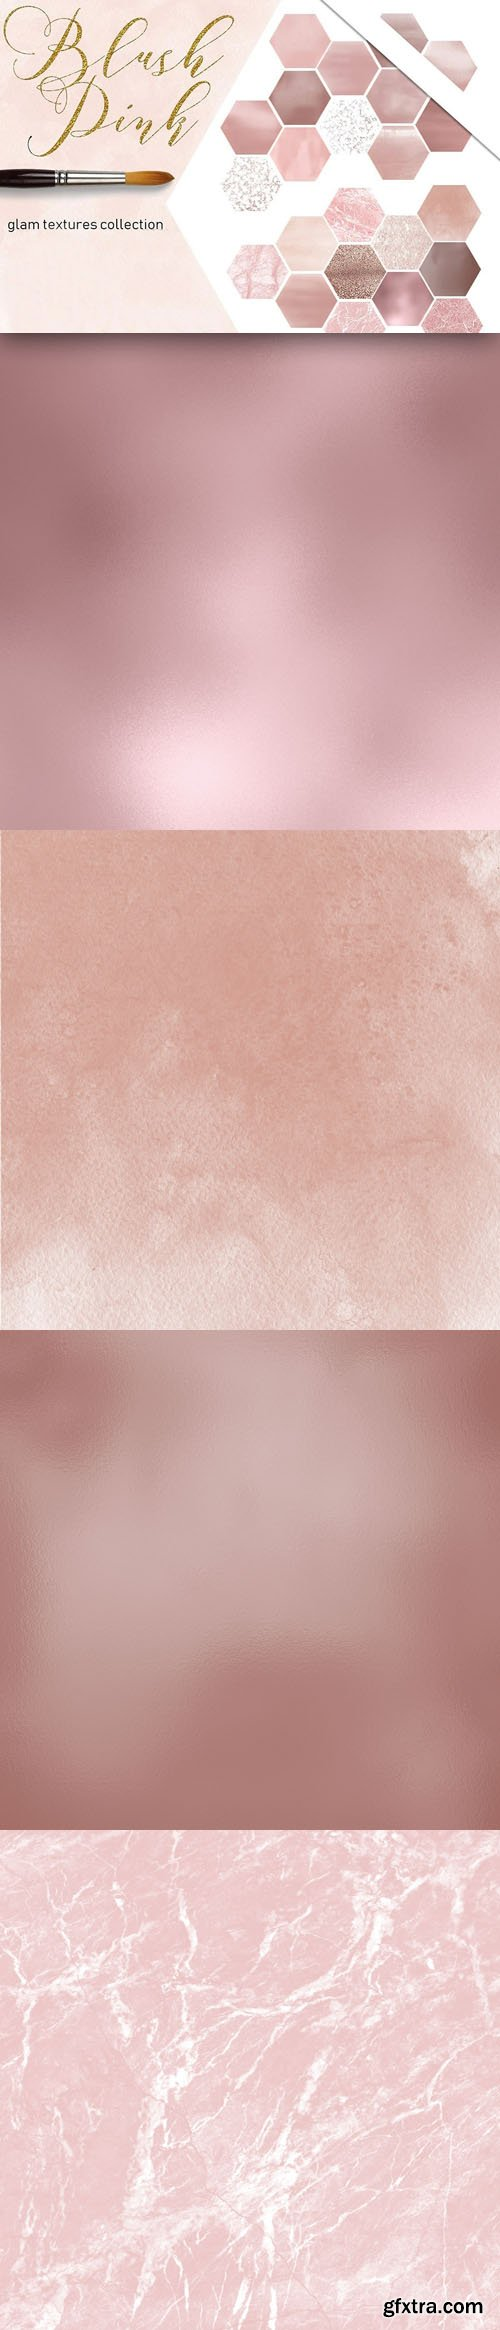 Blush Pink - Glam Textures Collection